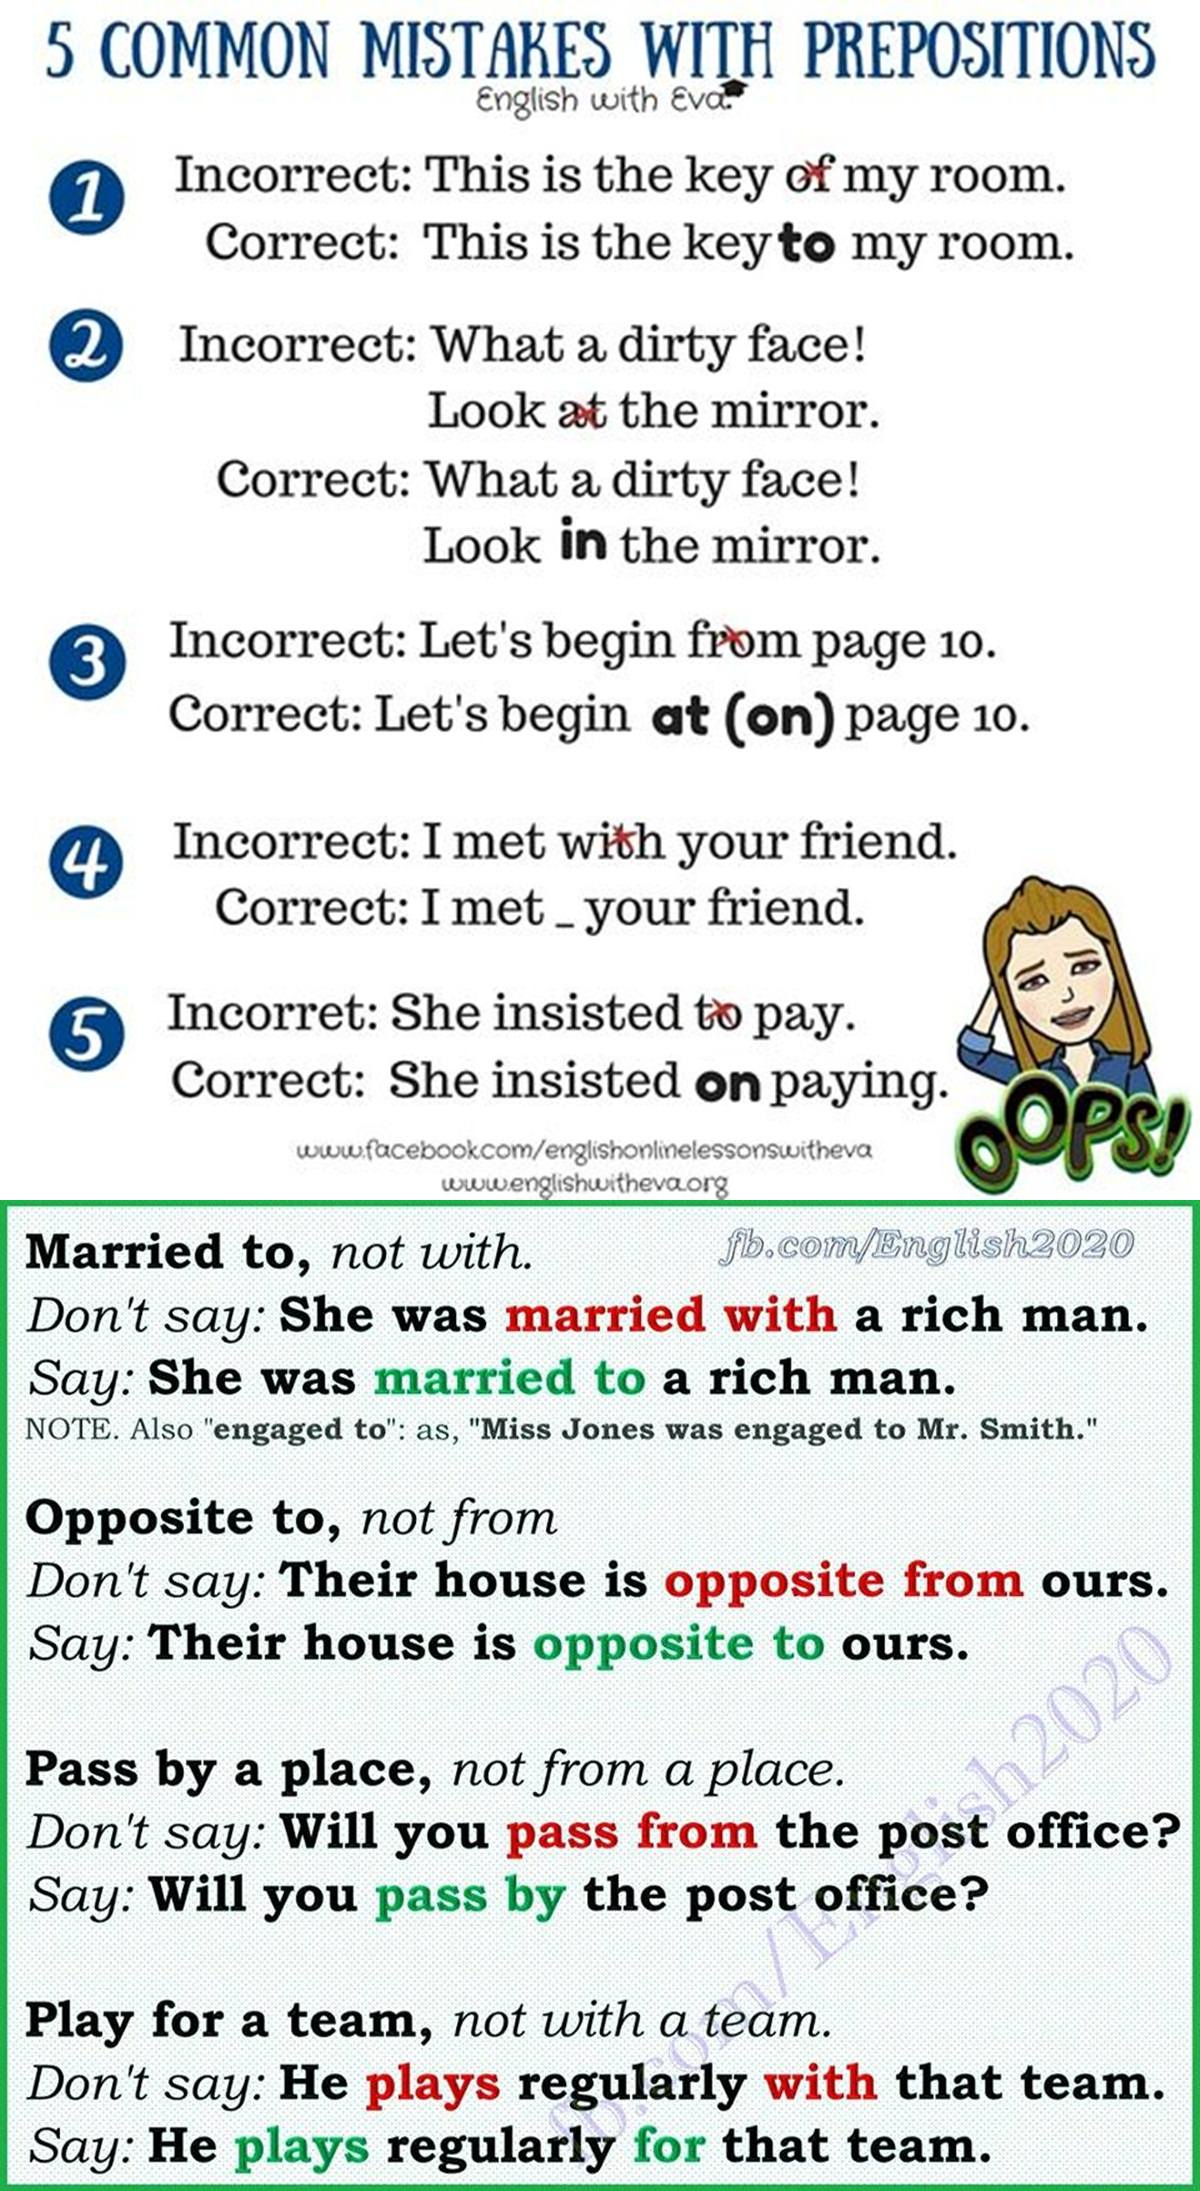 Common Mistakes with Prepositions 3